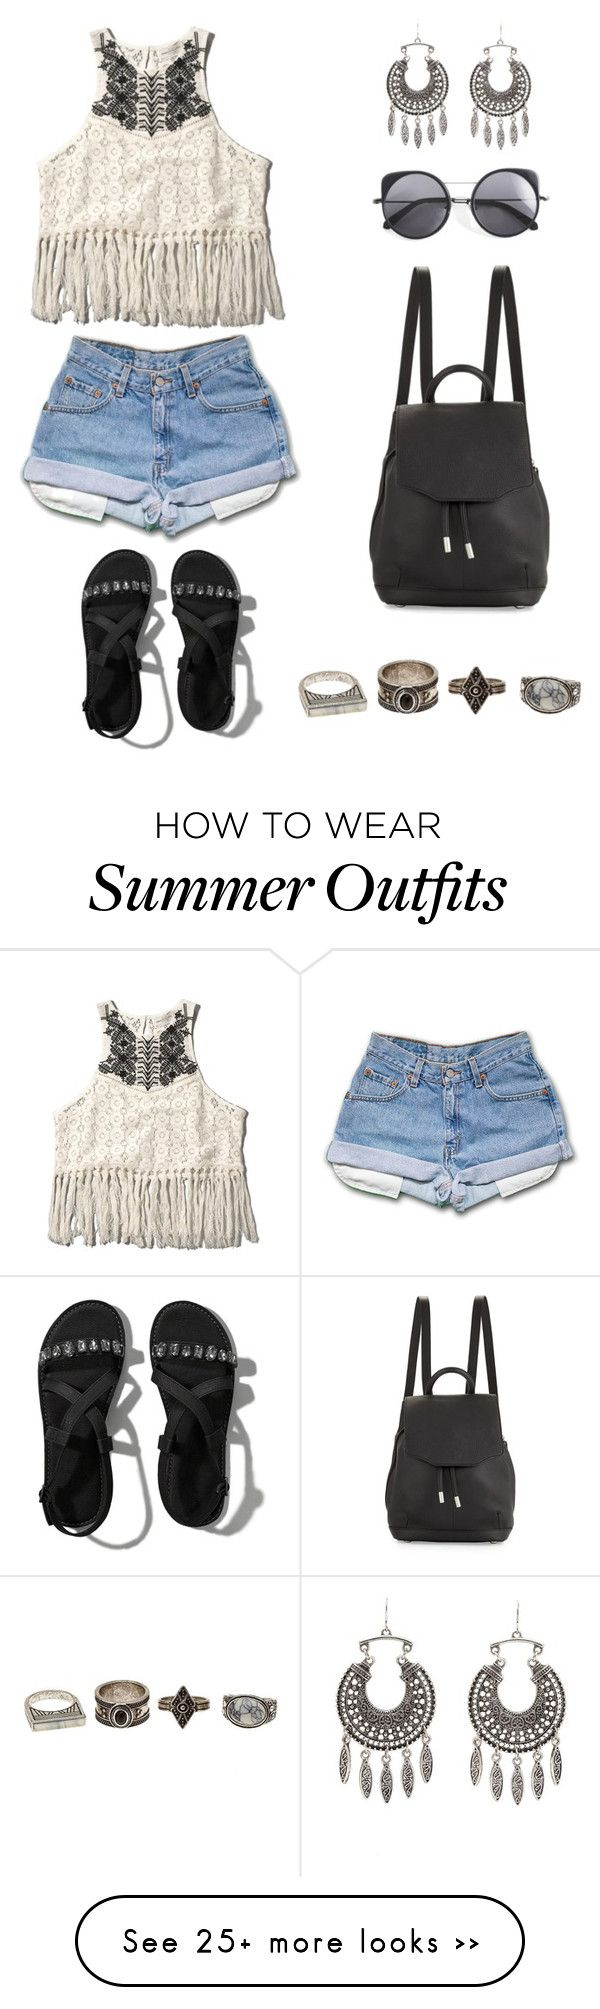 """End of summer outfit"" by snhollick on Polyvore featuring Abercrombie & Fitch, rag & bone, Charlotte Russe and Wood Wood"